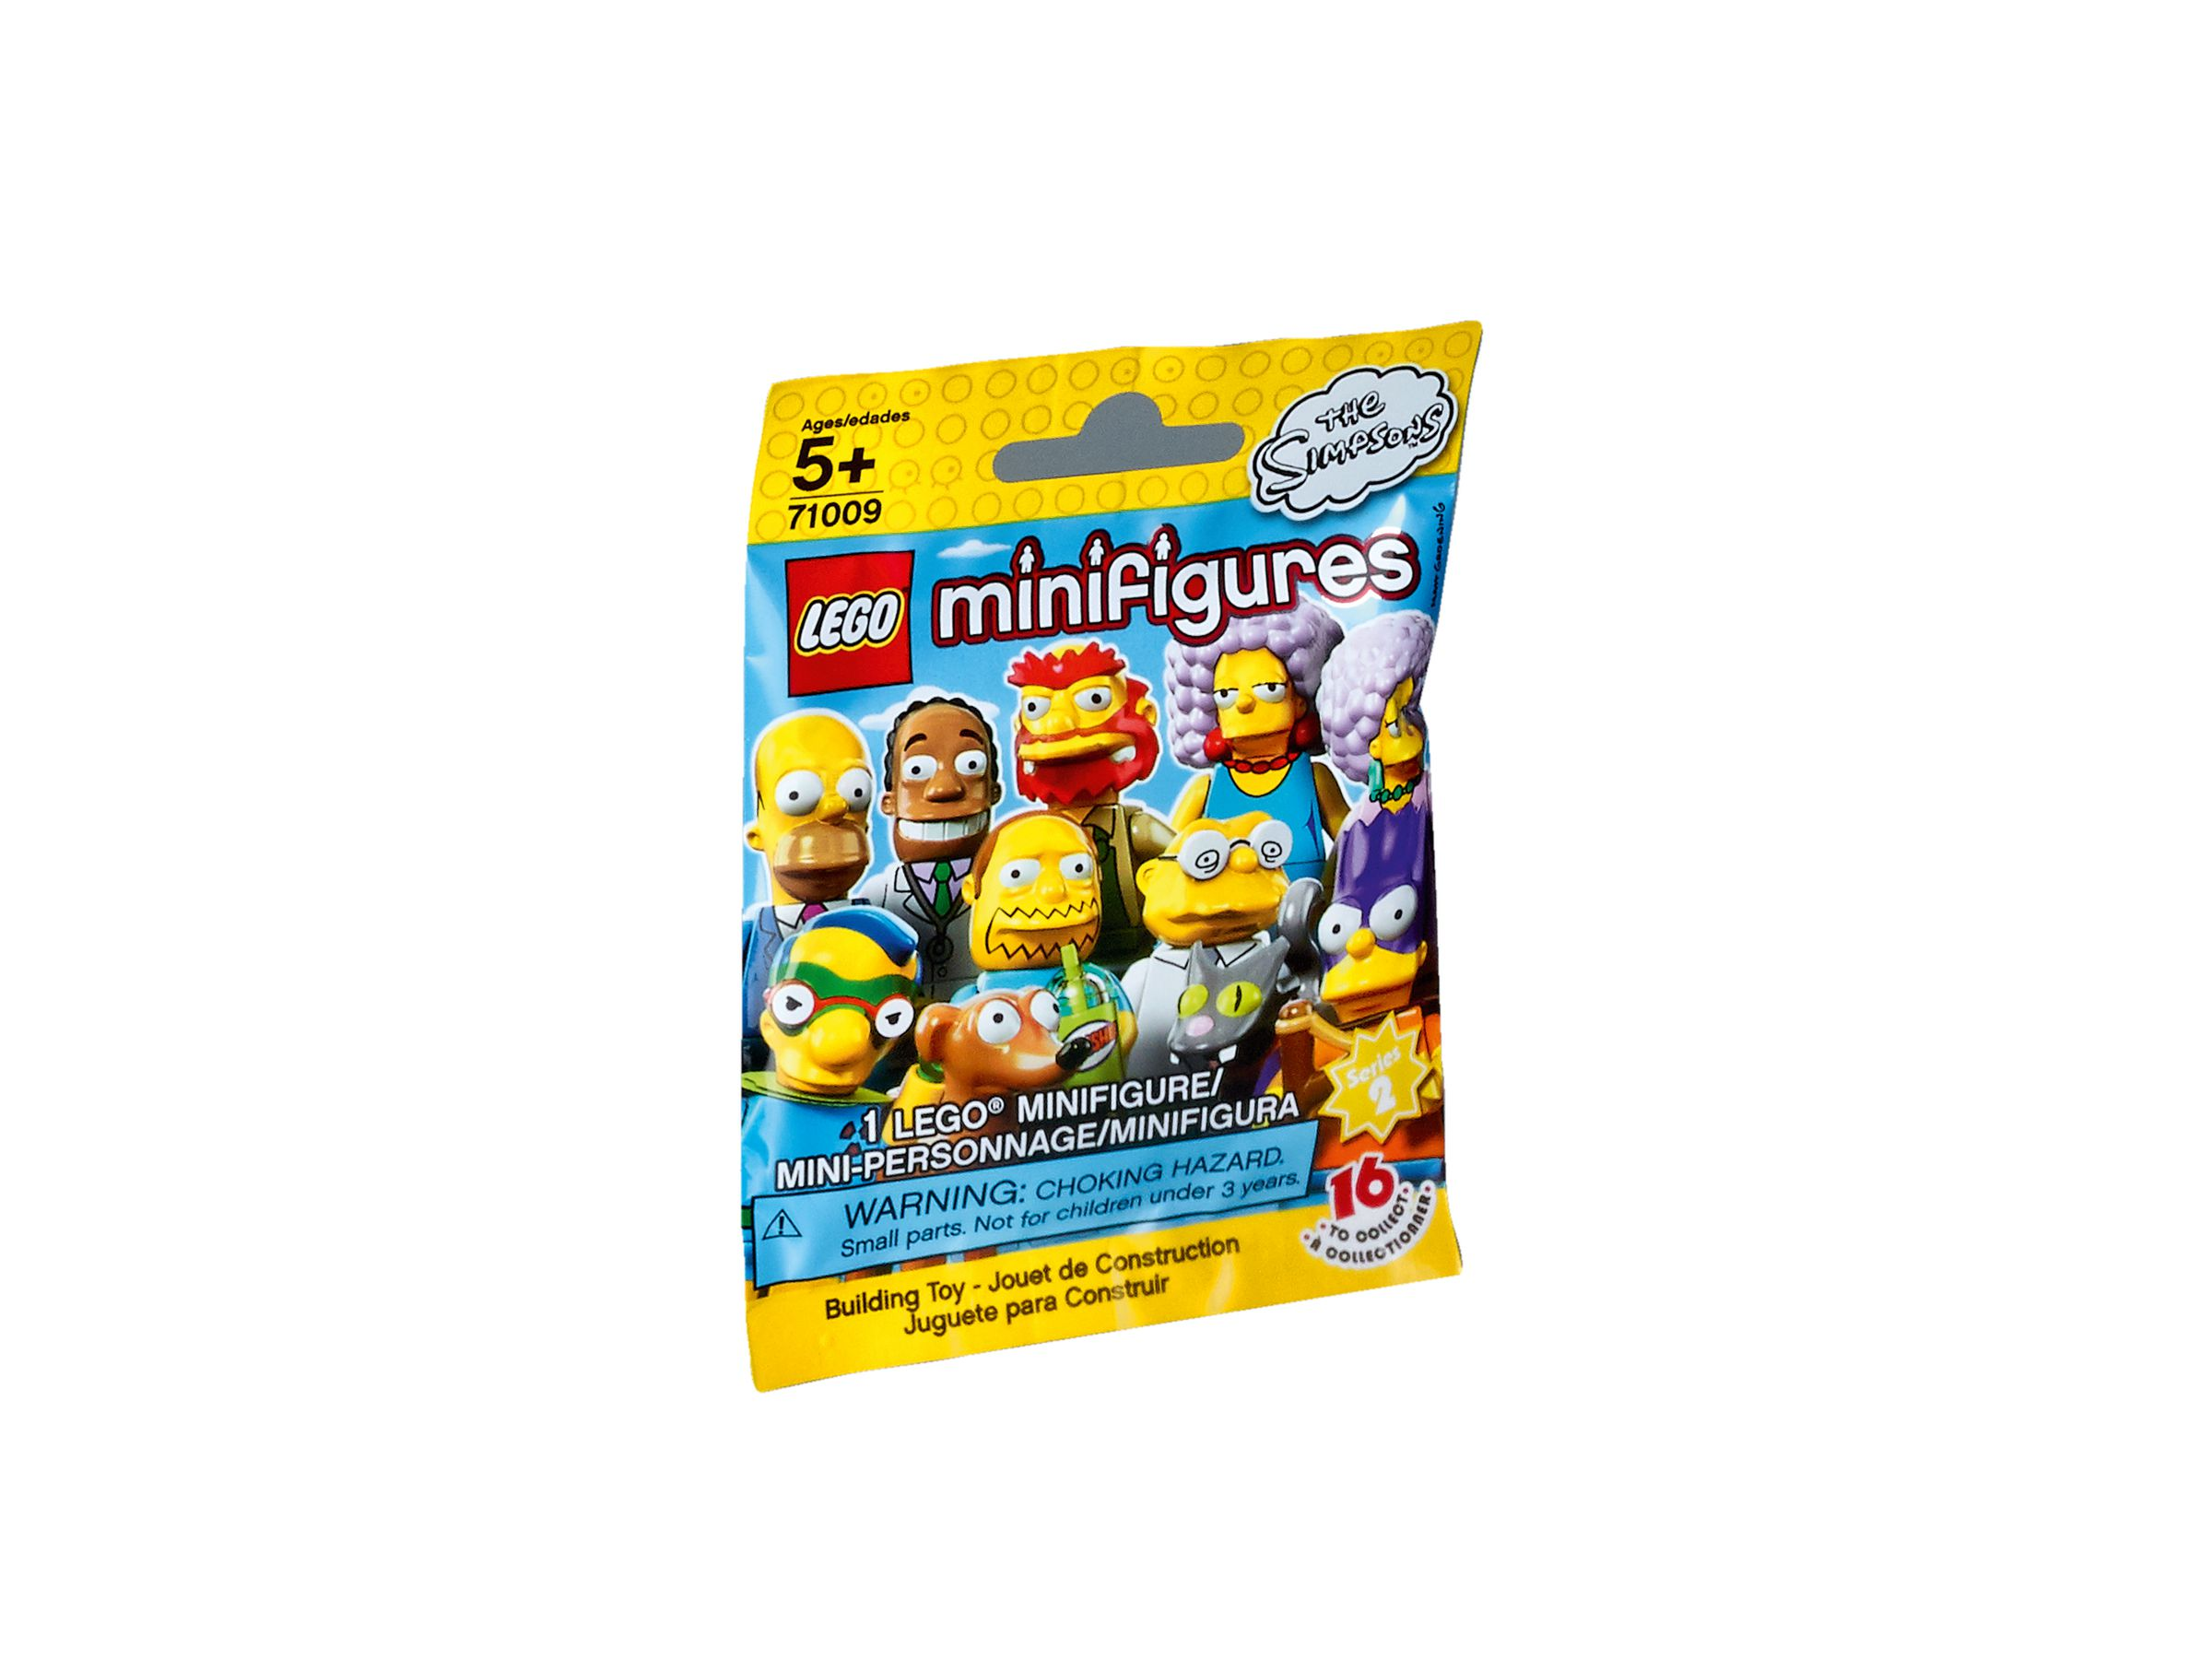 "LEGO Collectable Minifigures 71009 LEGO® Minifiguren - ""The Simpsons™"" Serie 2 LEGO_71009_alt1.jpg"